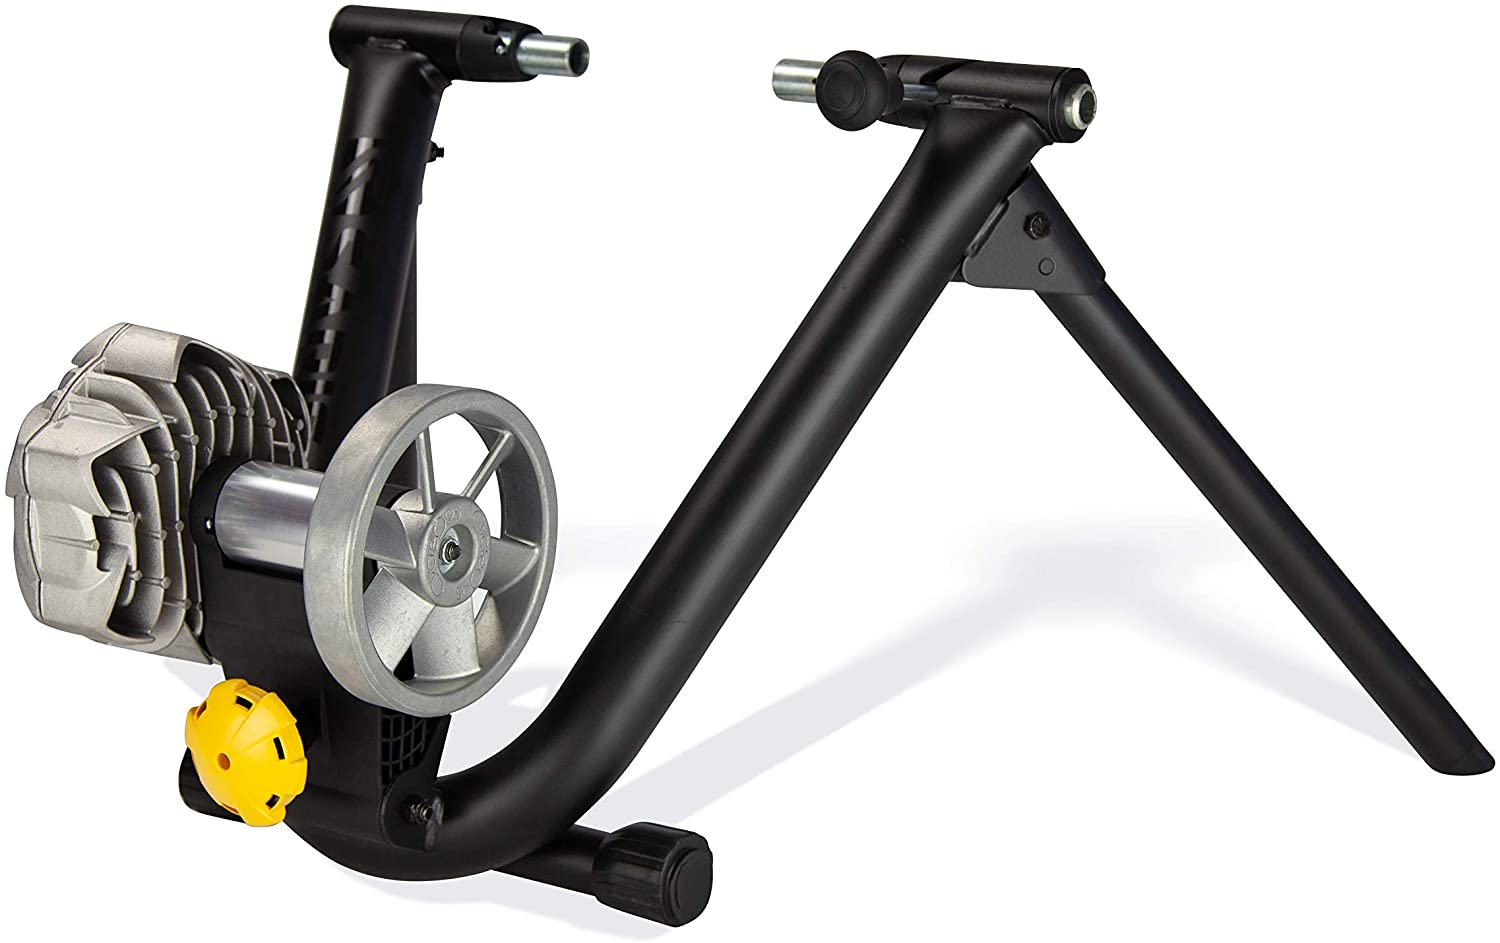 Cheap mail order specialty store Saris Fluid2 Over item handling Indoor Bike Trainer Option Smart Ro Fits Equipped